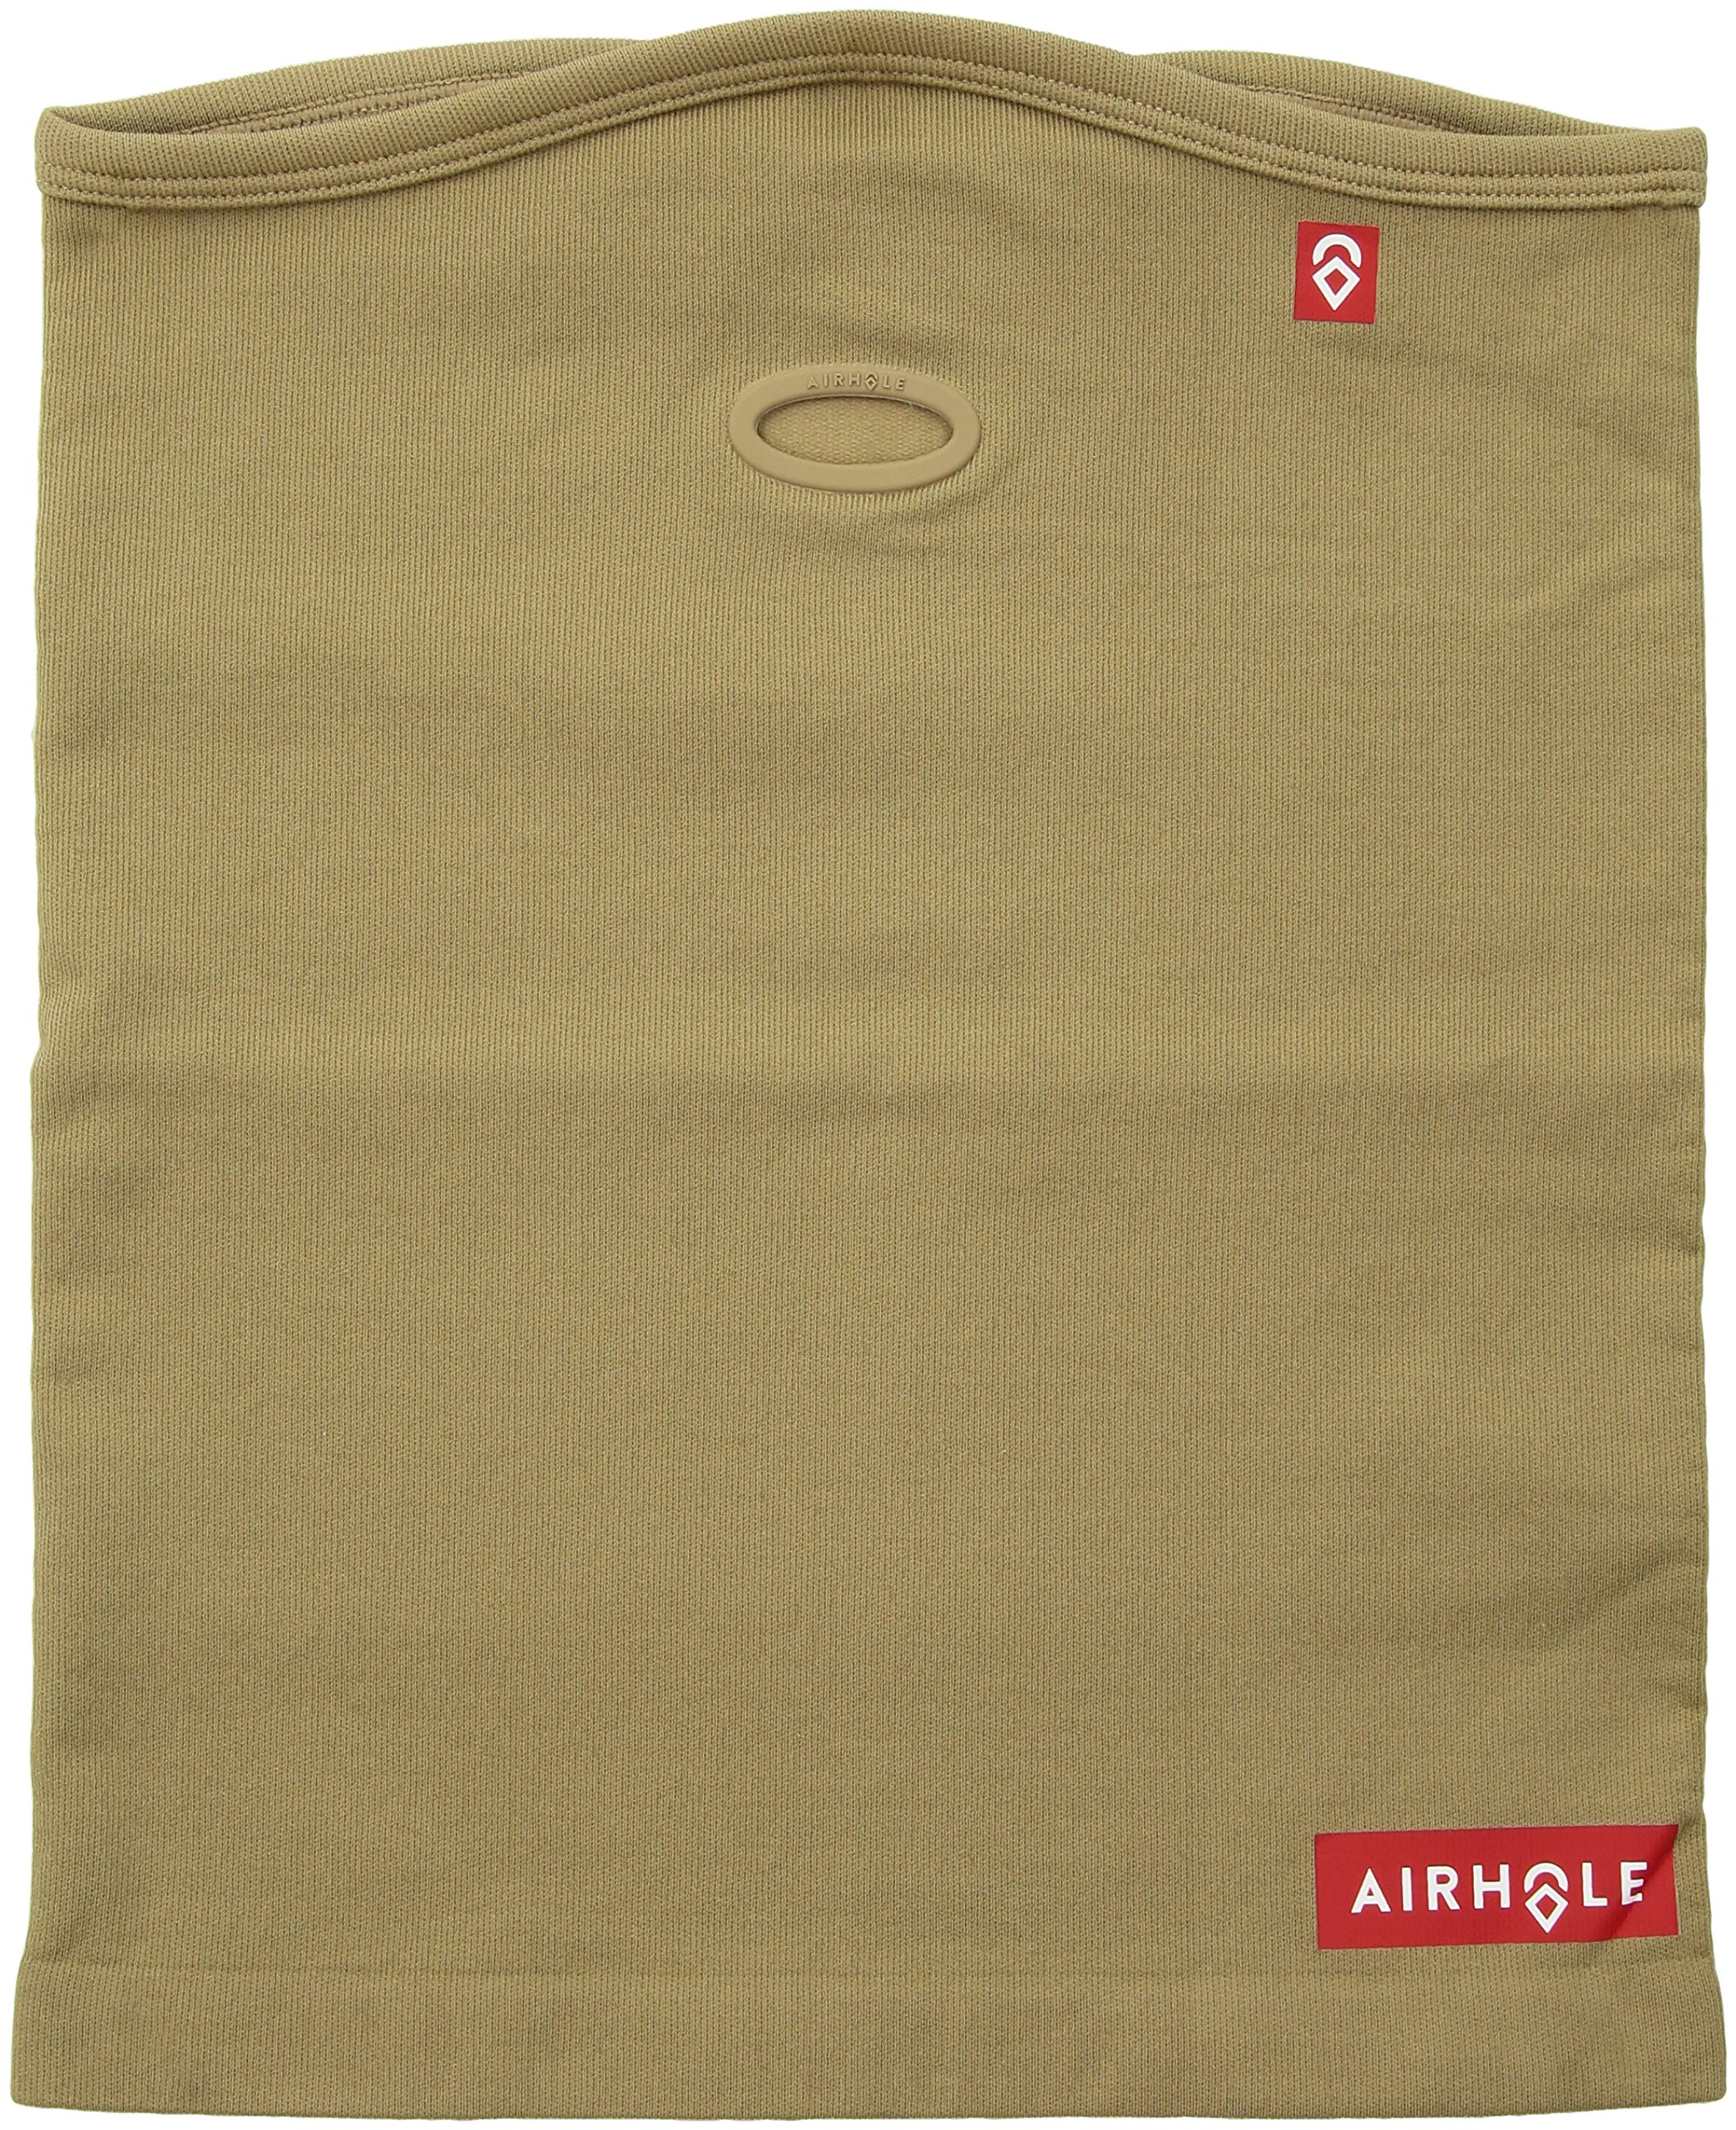 Airhole Airtube Ergo Featherlite Headwear, Tan, One Size